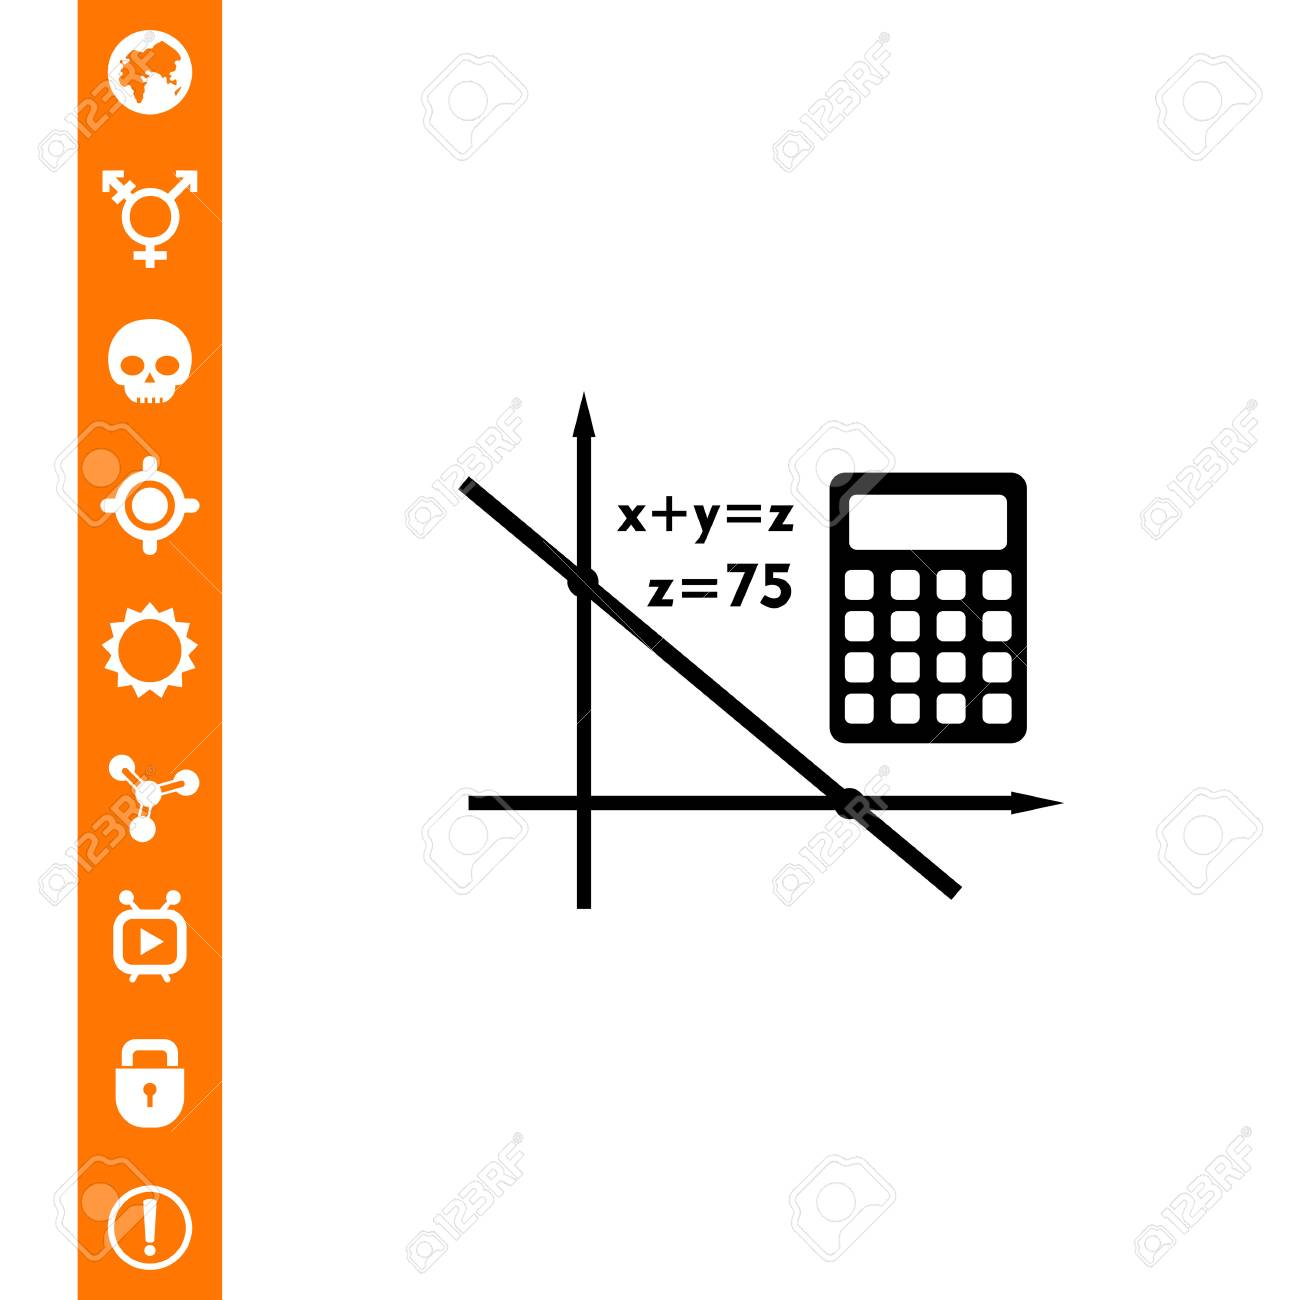 Algebra Simple Icon Royalty Free Cliparts, Vectors, And Stock ...